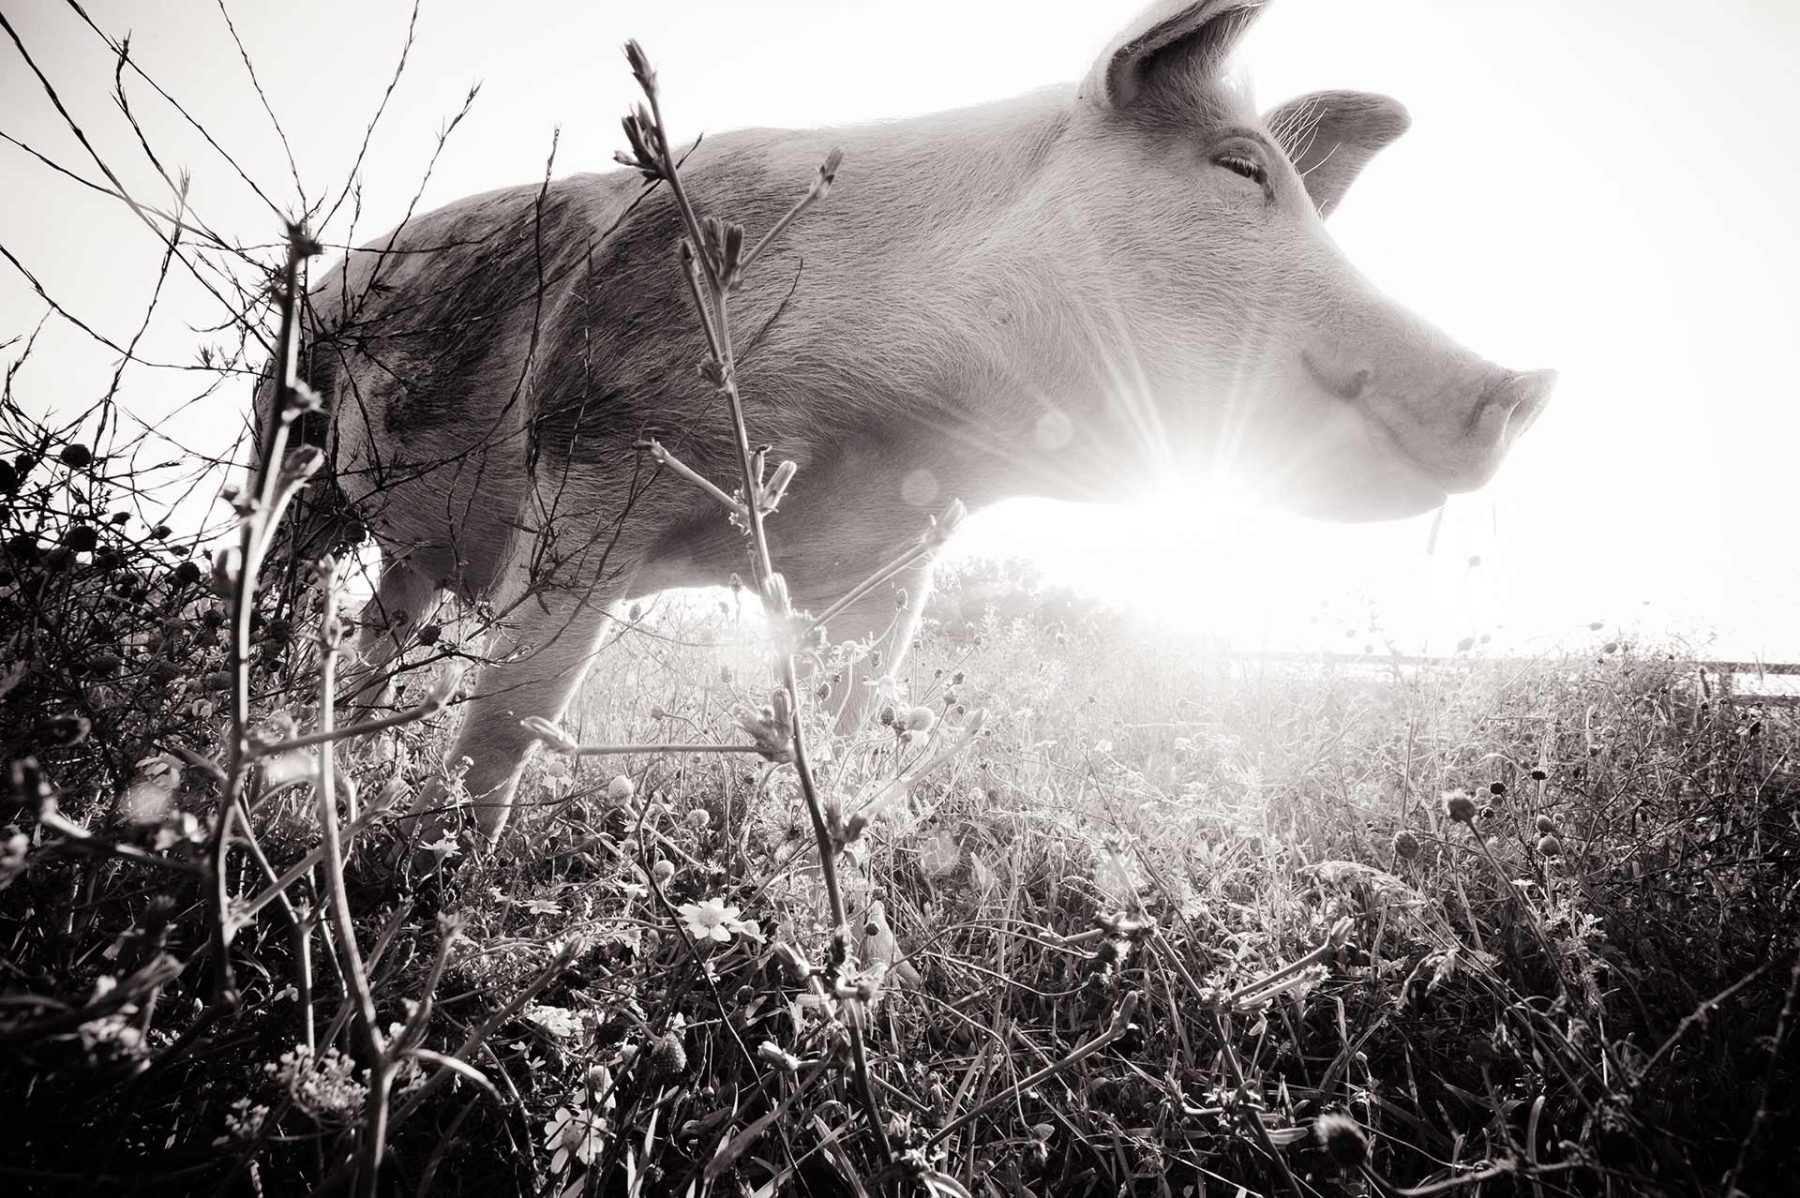 Jane, a pig rescued from factory farming and now living at Farm Sanctuary. USA, 2012